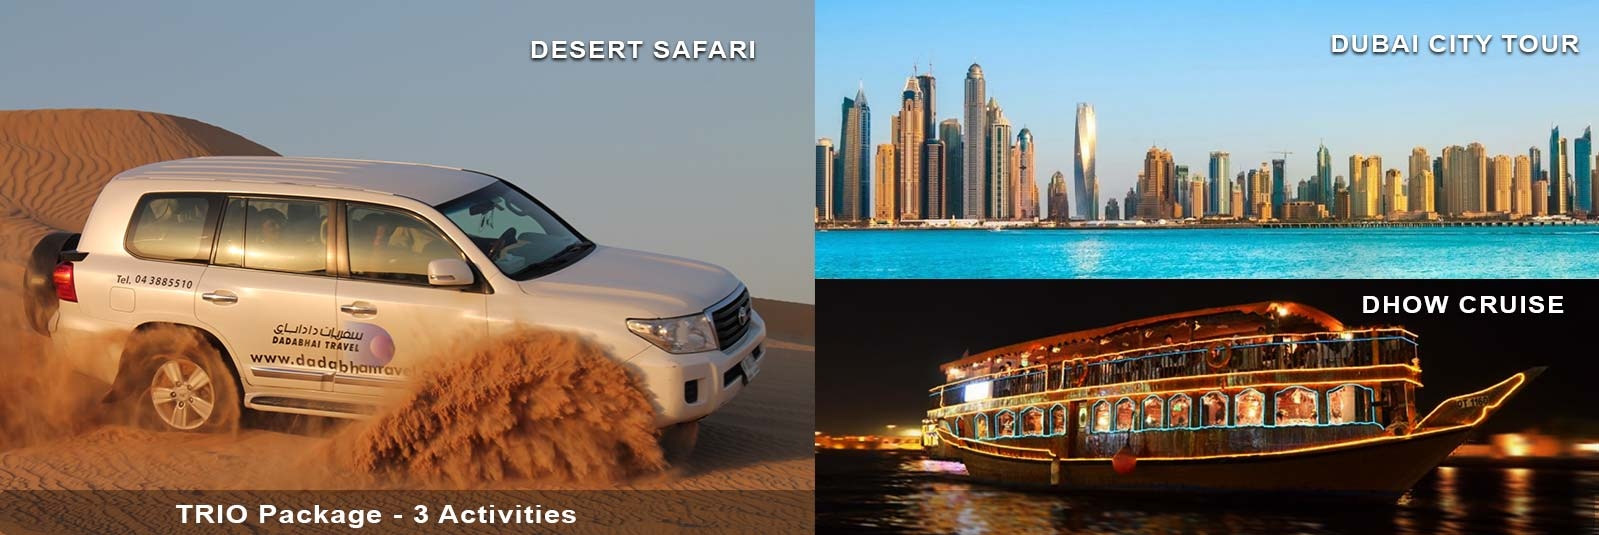 Trio-Package-Dubai-Safari-Dhow-Cruise-and-Dubai-City-Tour